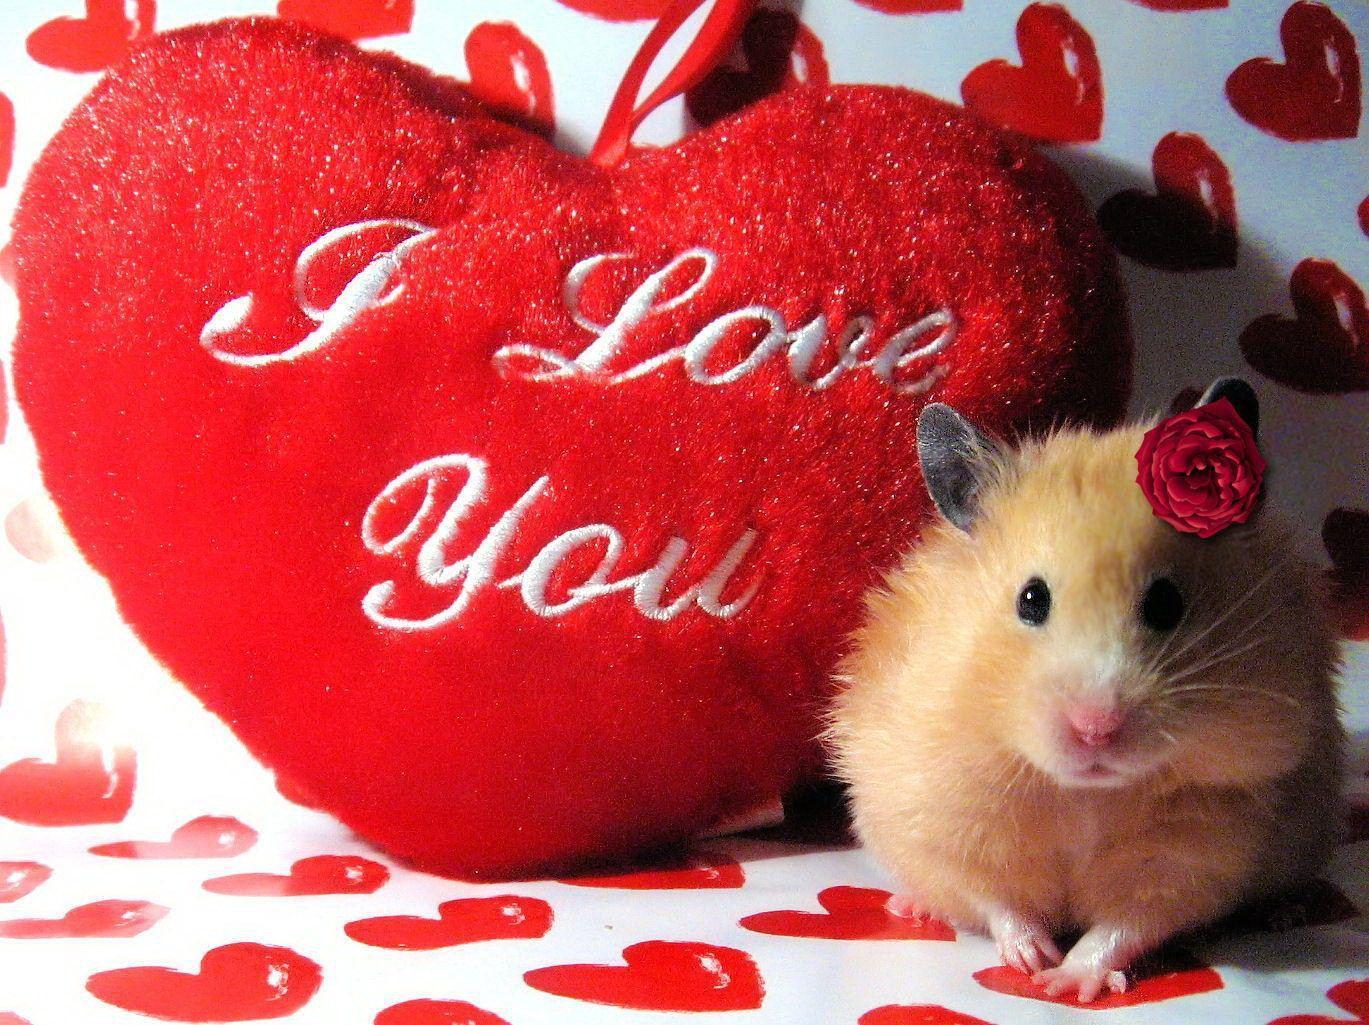 I Love You Images, Wallpapers, Photos